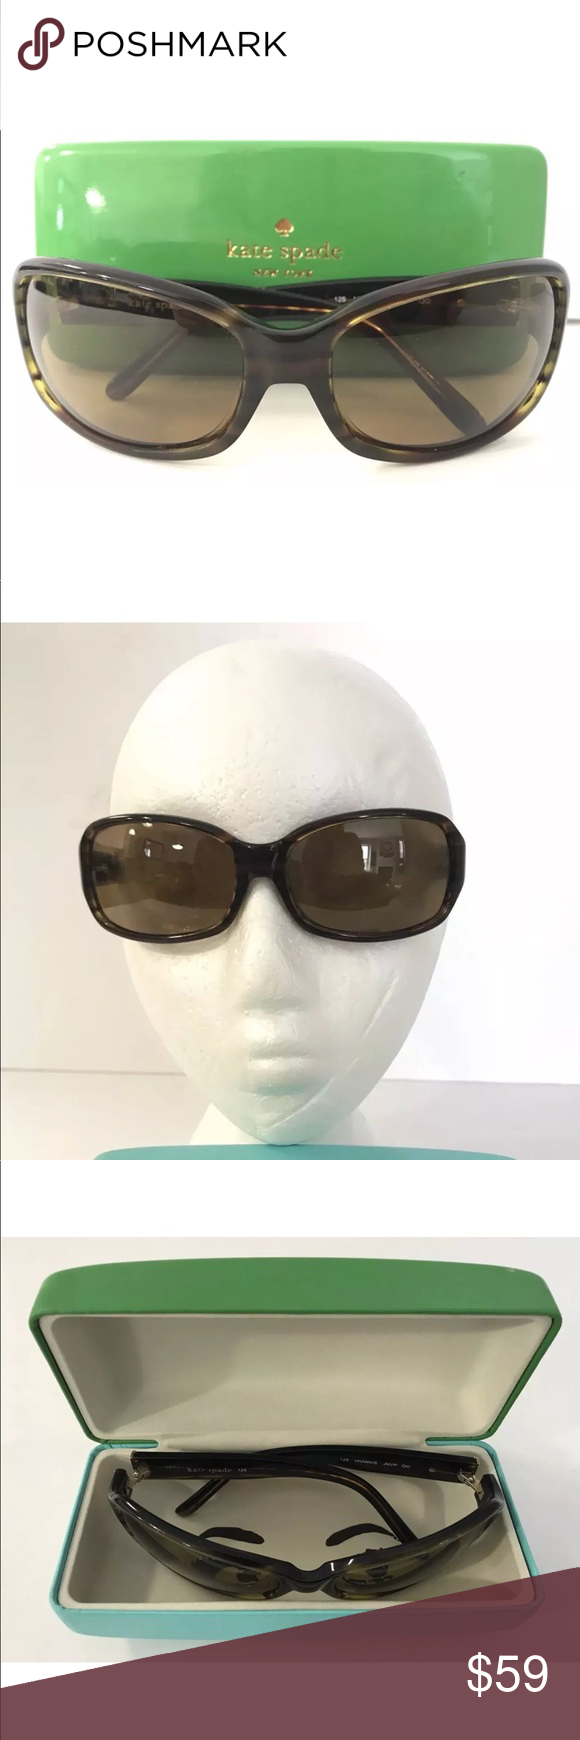 cf7b20a26ec9 Kate Spade sunglasses Vivian brown frame with case These are pre owned  sunglasses. Vivian brown